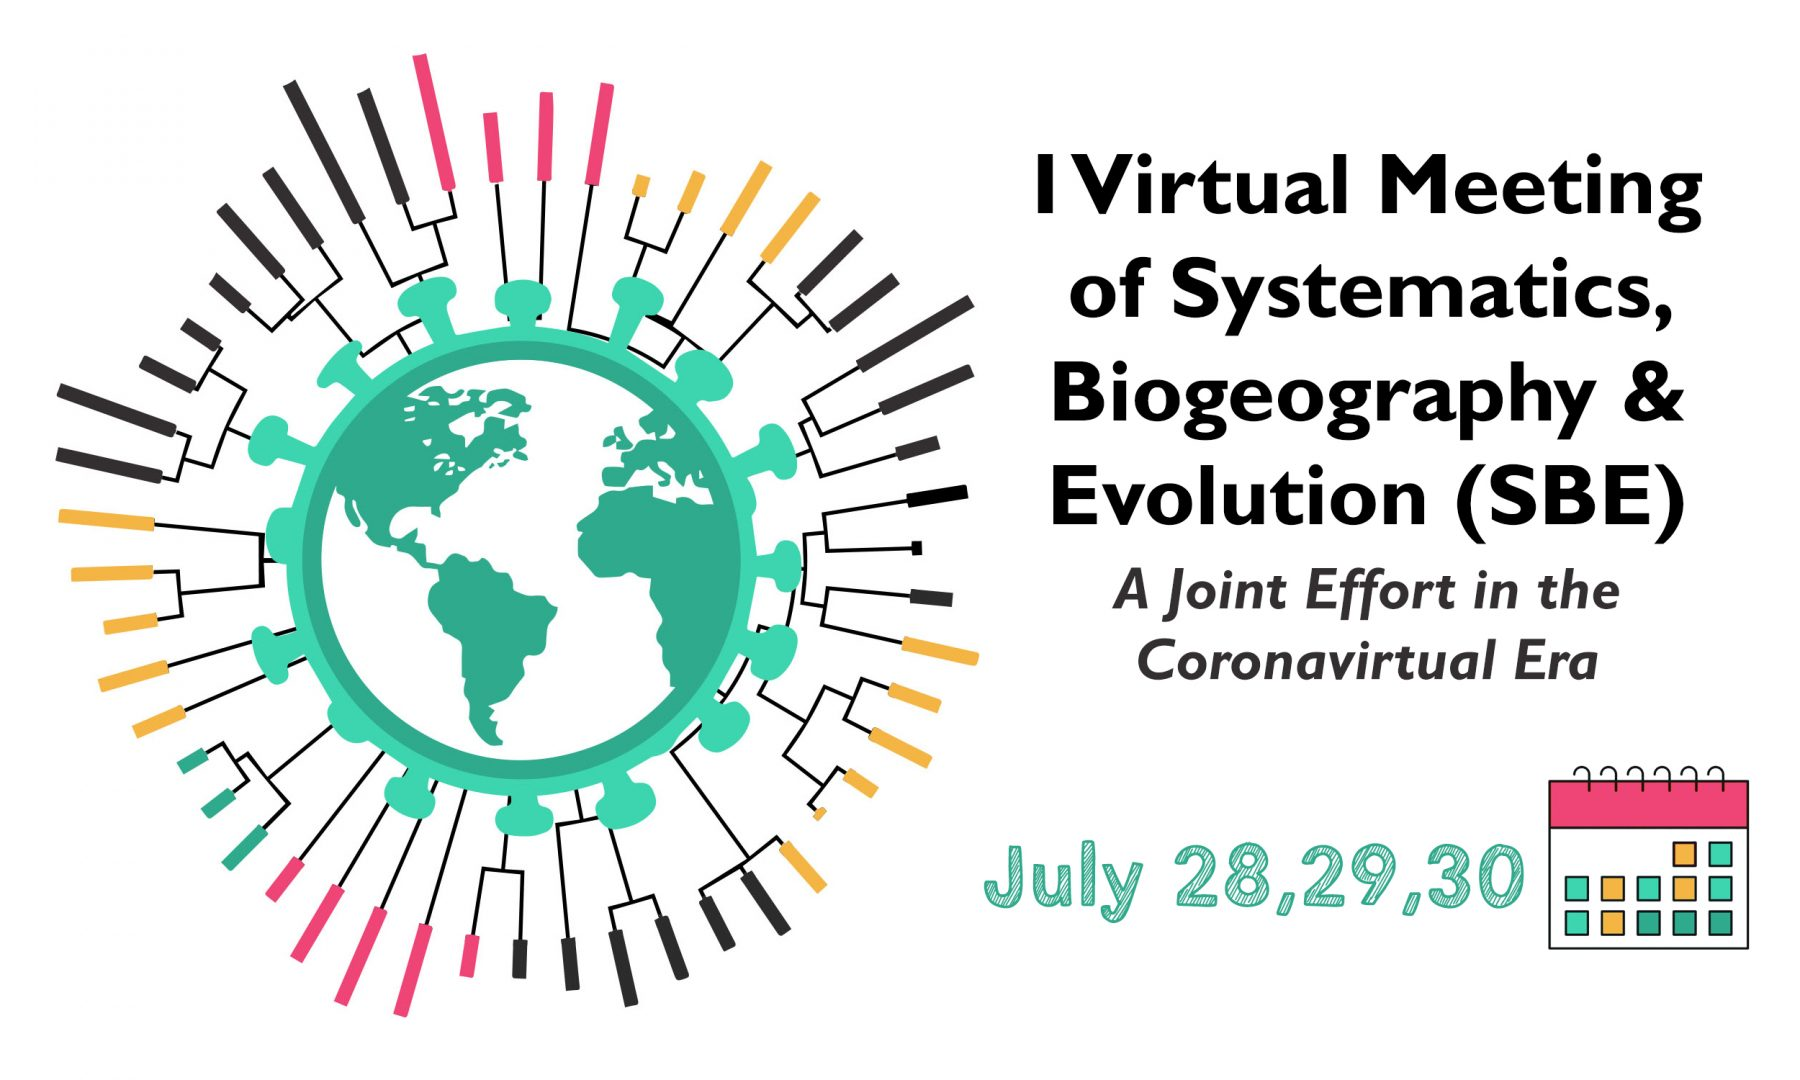 I Meeting of Systematics, Biogeography and Evolution (SBE): a joint effort in the coronavirtual era